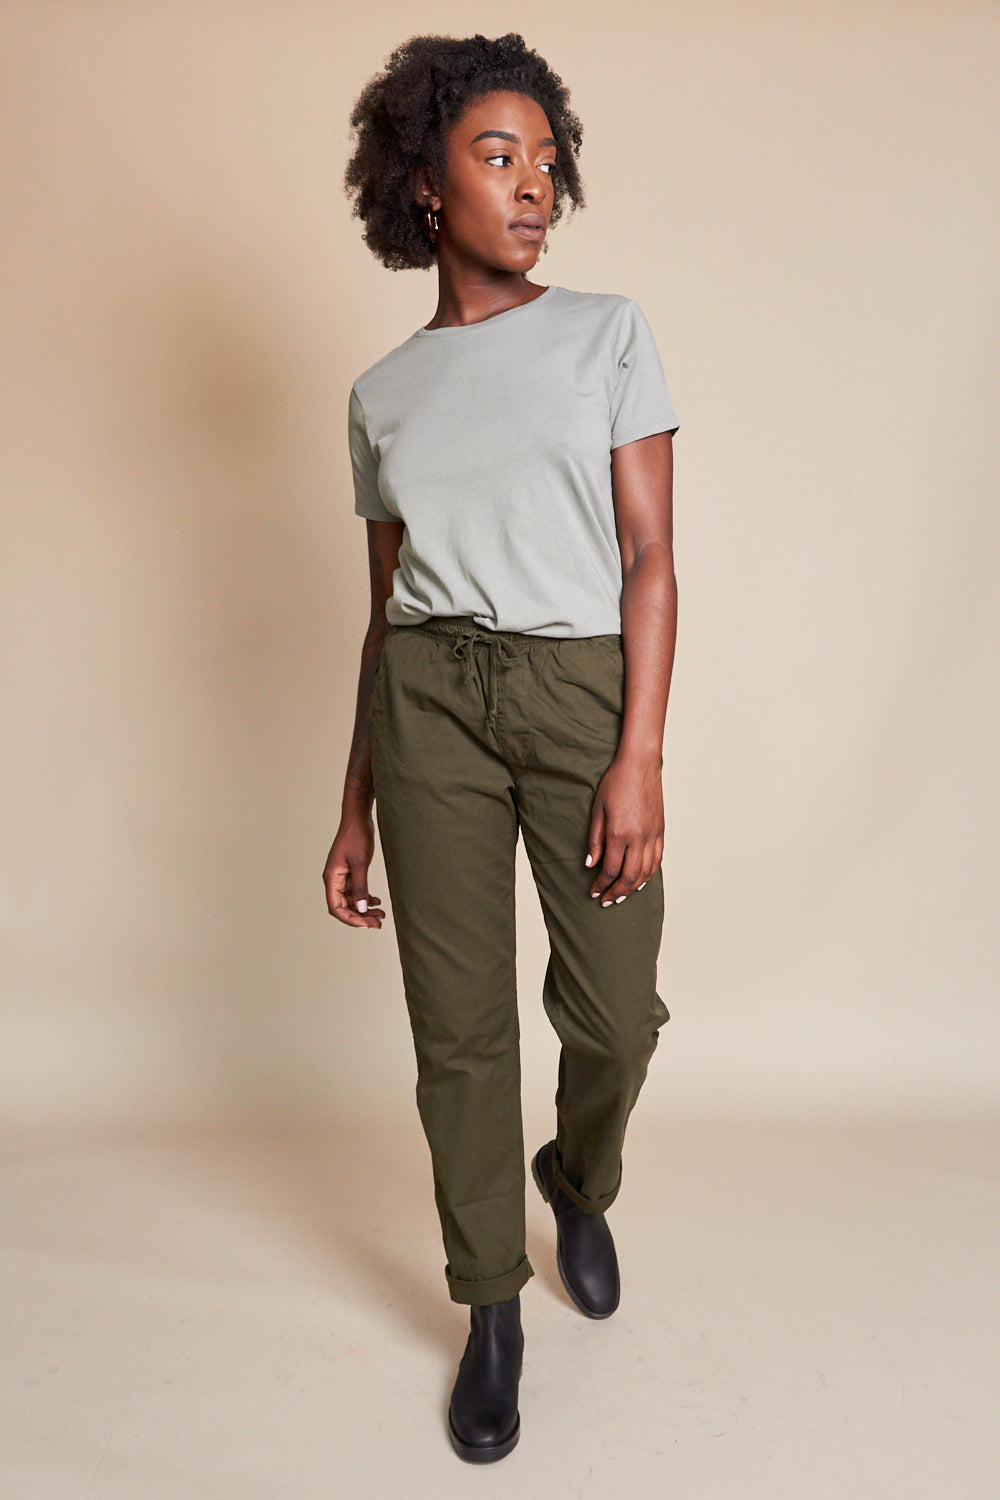 Save Khaki United Organic Cotton Layering Crew in Sprout - Vert & Vogue